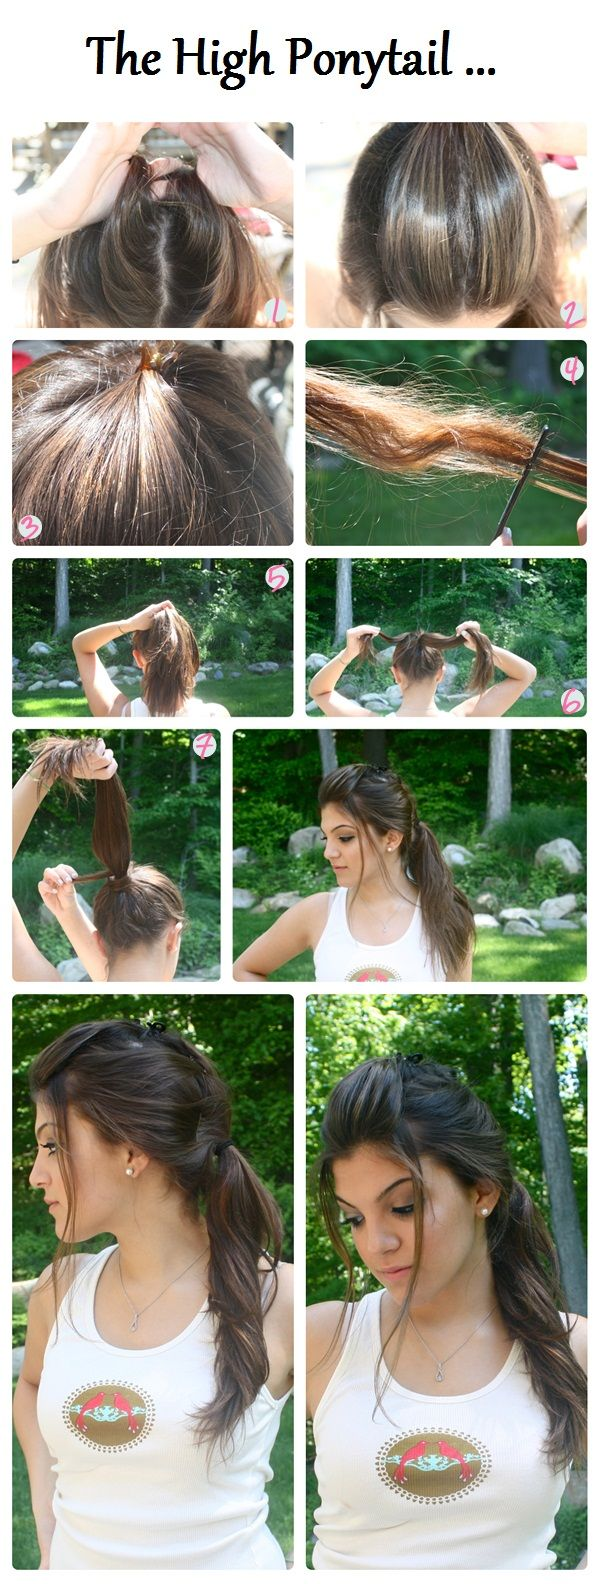 How To Do A High Ponytail Hair Style Beauty Tutorials Syd When